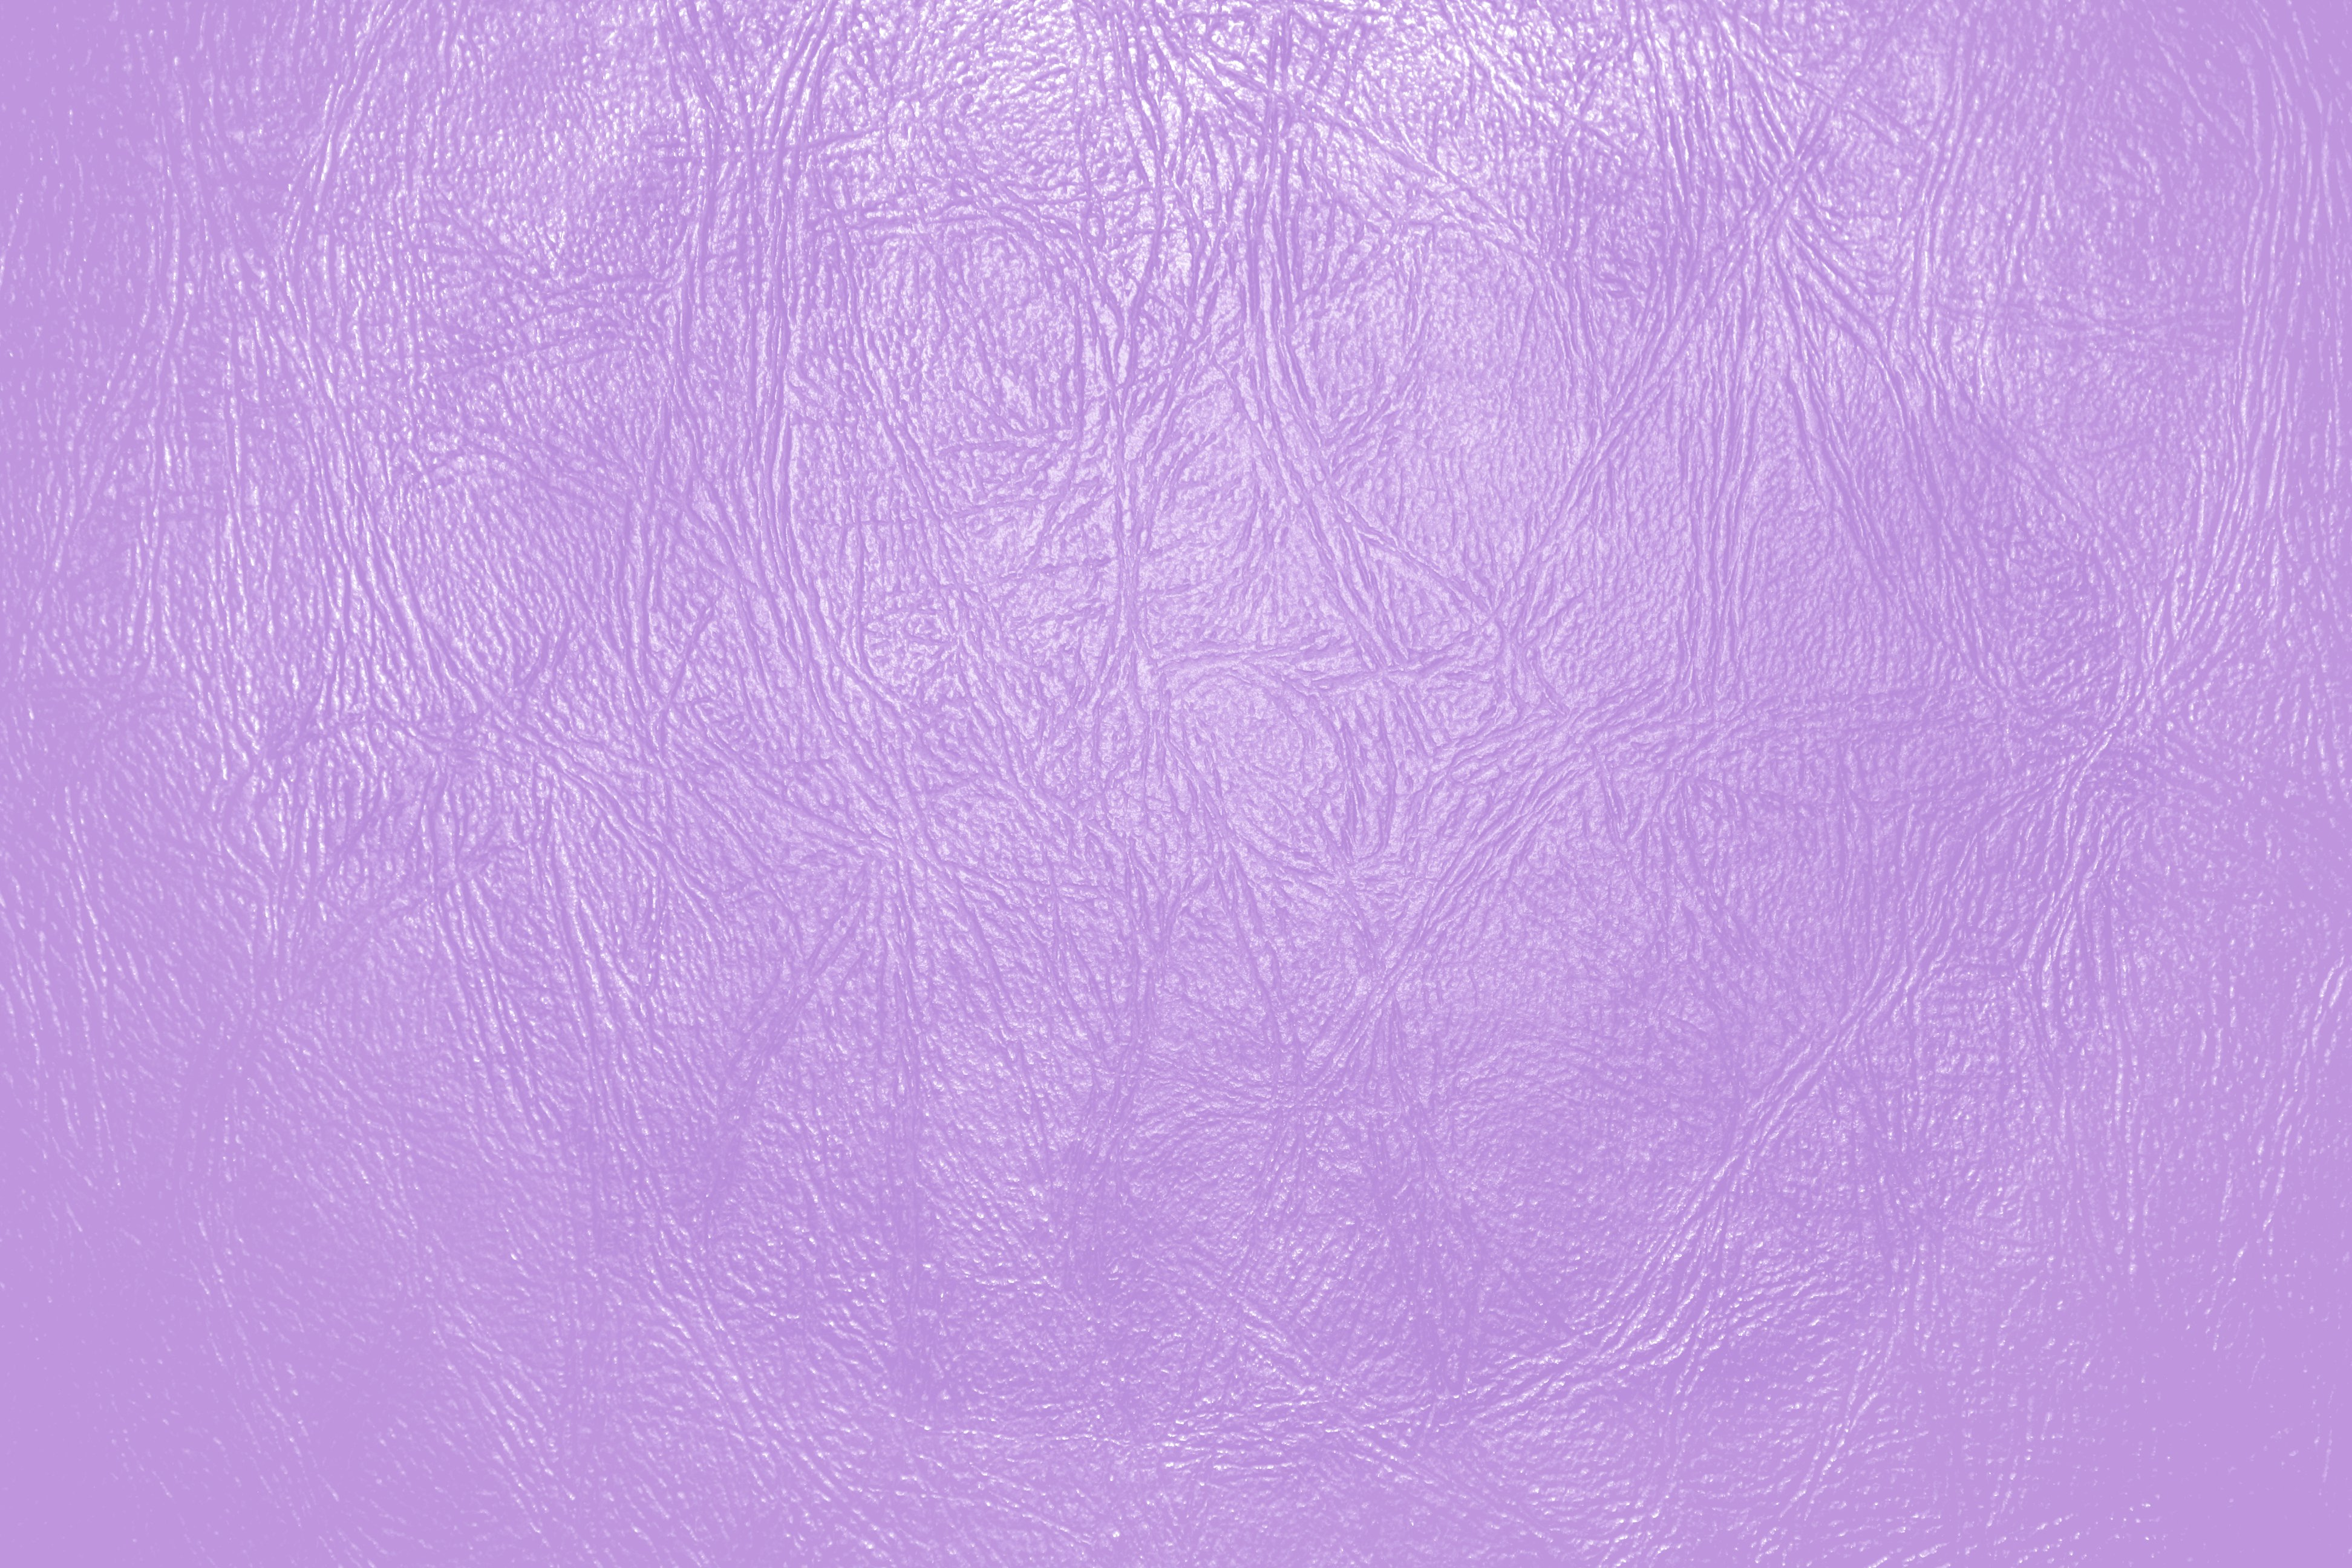 Lavender Or Light Purple Leather  Texture Background